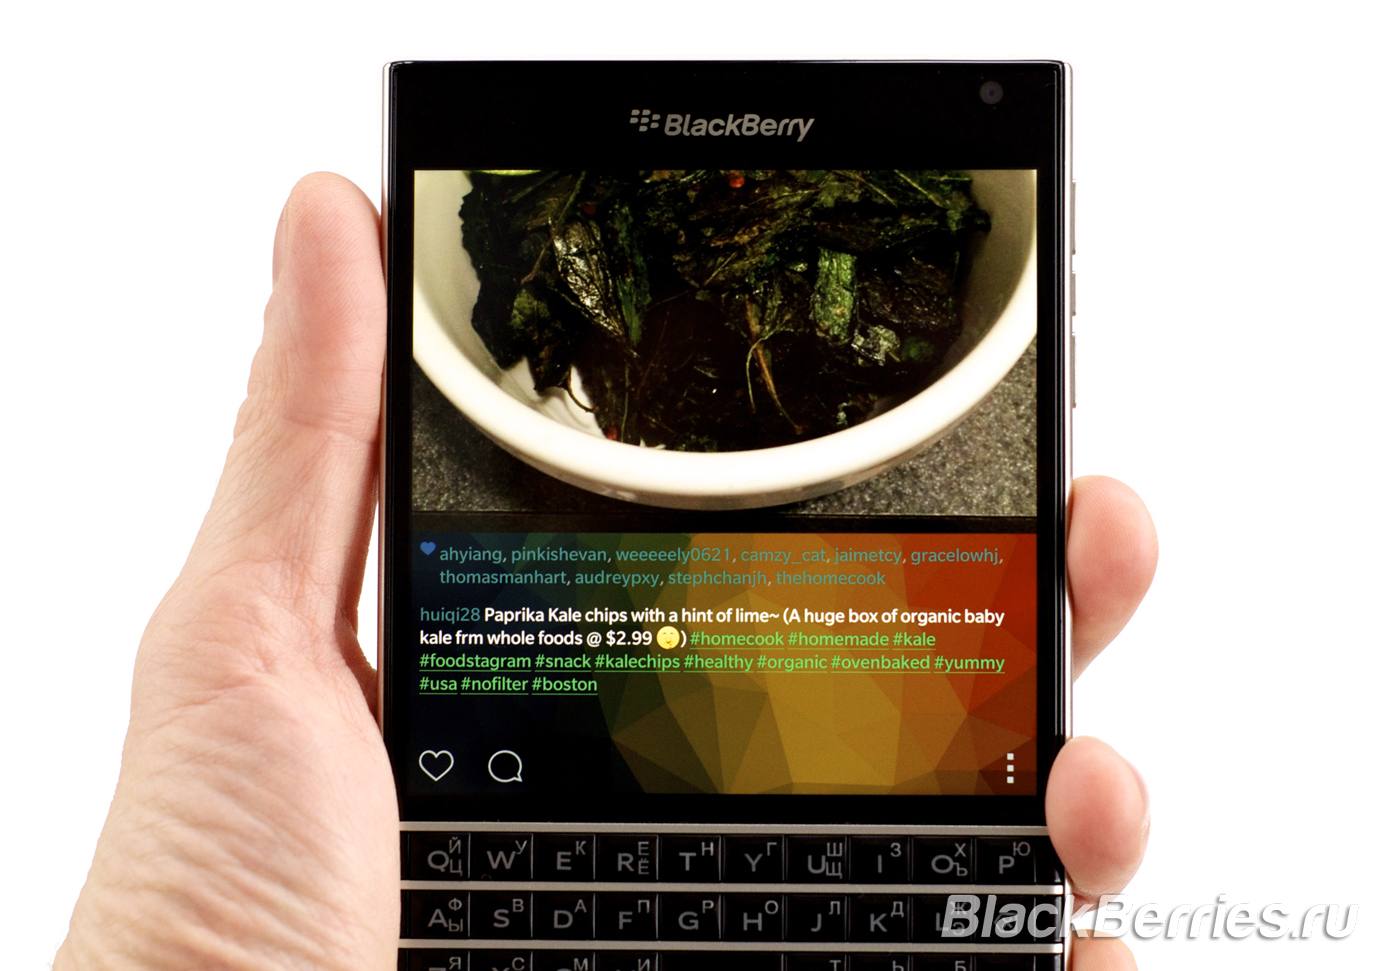 BlackBerry-Passport-Insta10-1-1